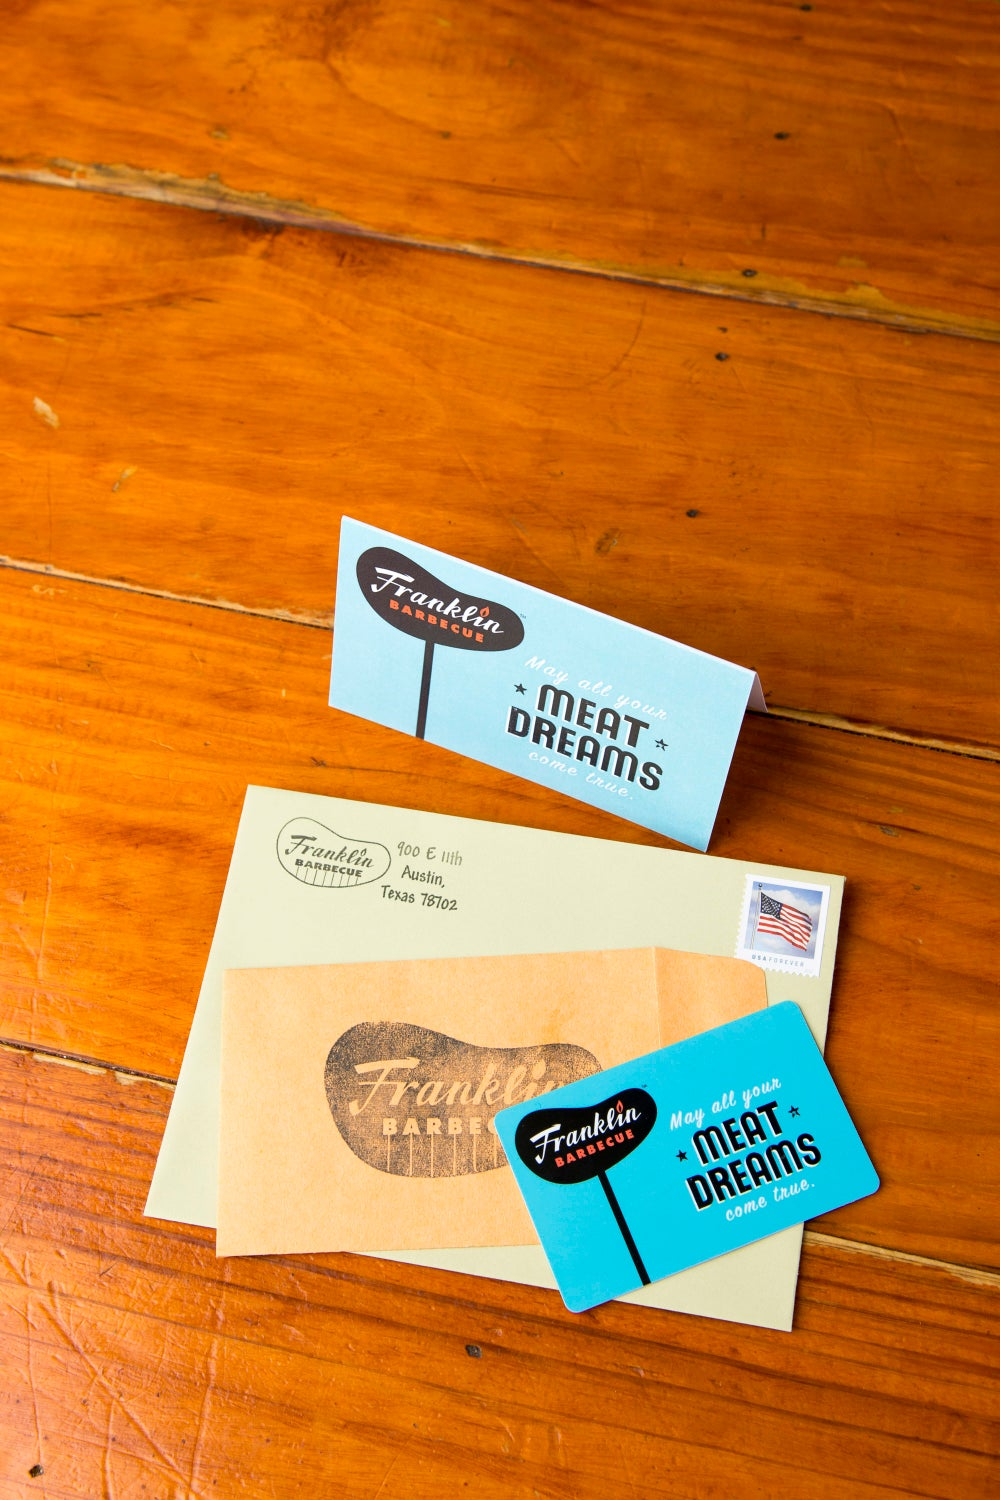 Image of Franklin Barbecue Gift Cards